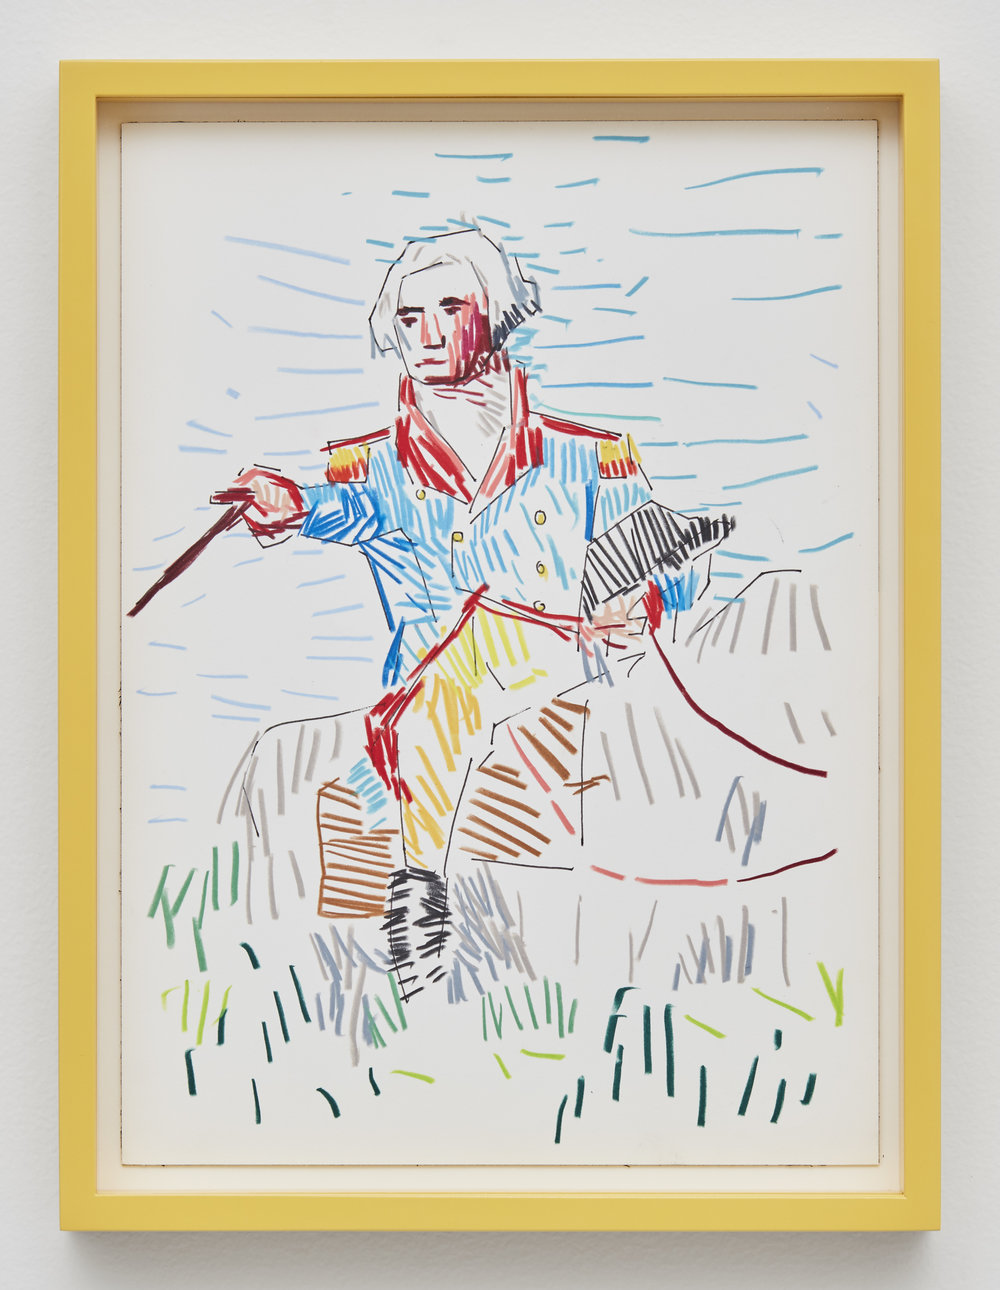 George Washington, 2017 colored pencil and ink on paper 40 x 30 cm - 15 3/4 x 11 13/16 inches (framed)